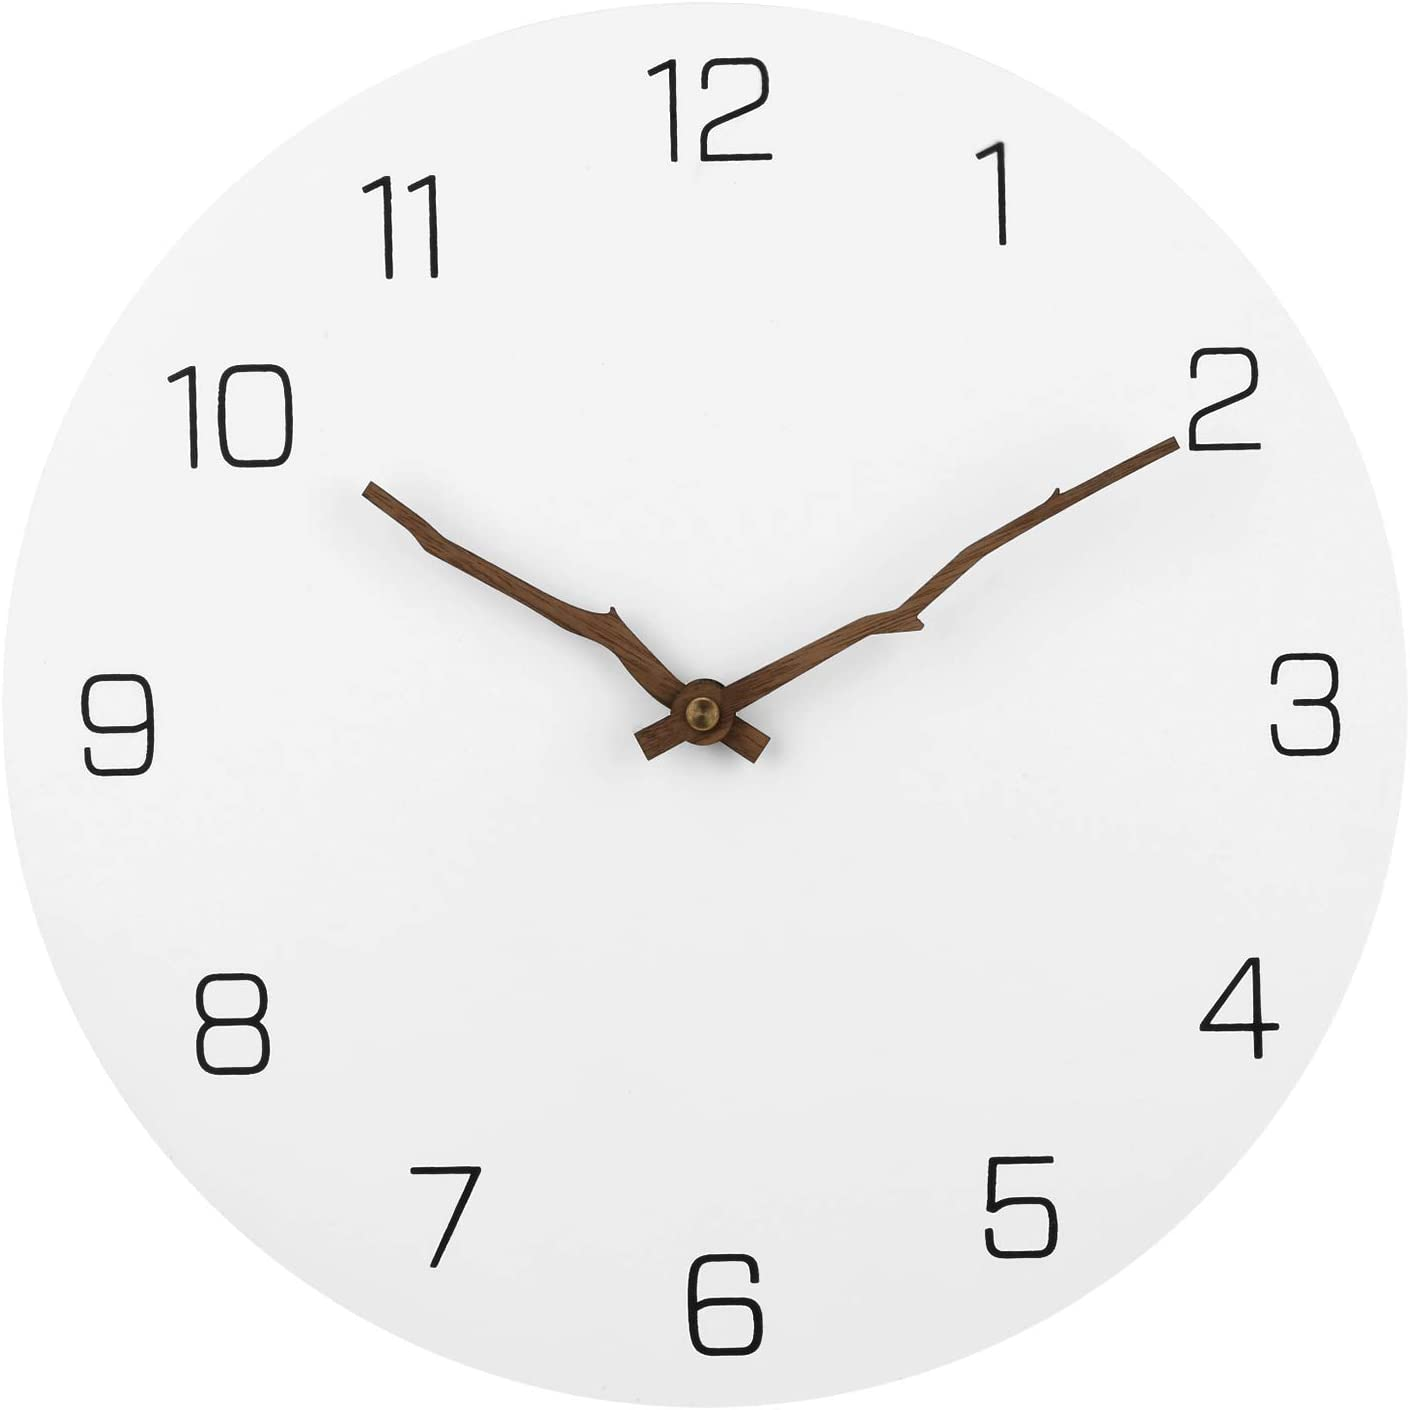 JoFomp Modern Simple Wooden Wall Clock, Large 16 inch Round Silent Non-Ticking Quartz Decorative Battery Operated Wall Clock for Living Room Home Office School Arabic Numeral Design (White, 16 inch)